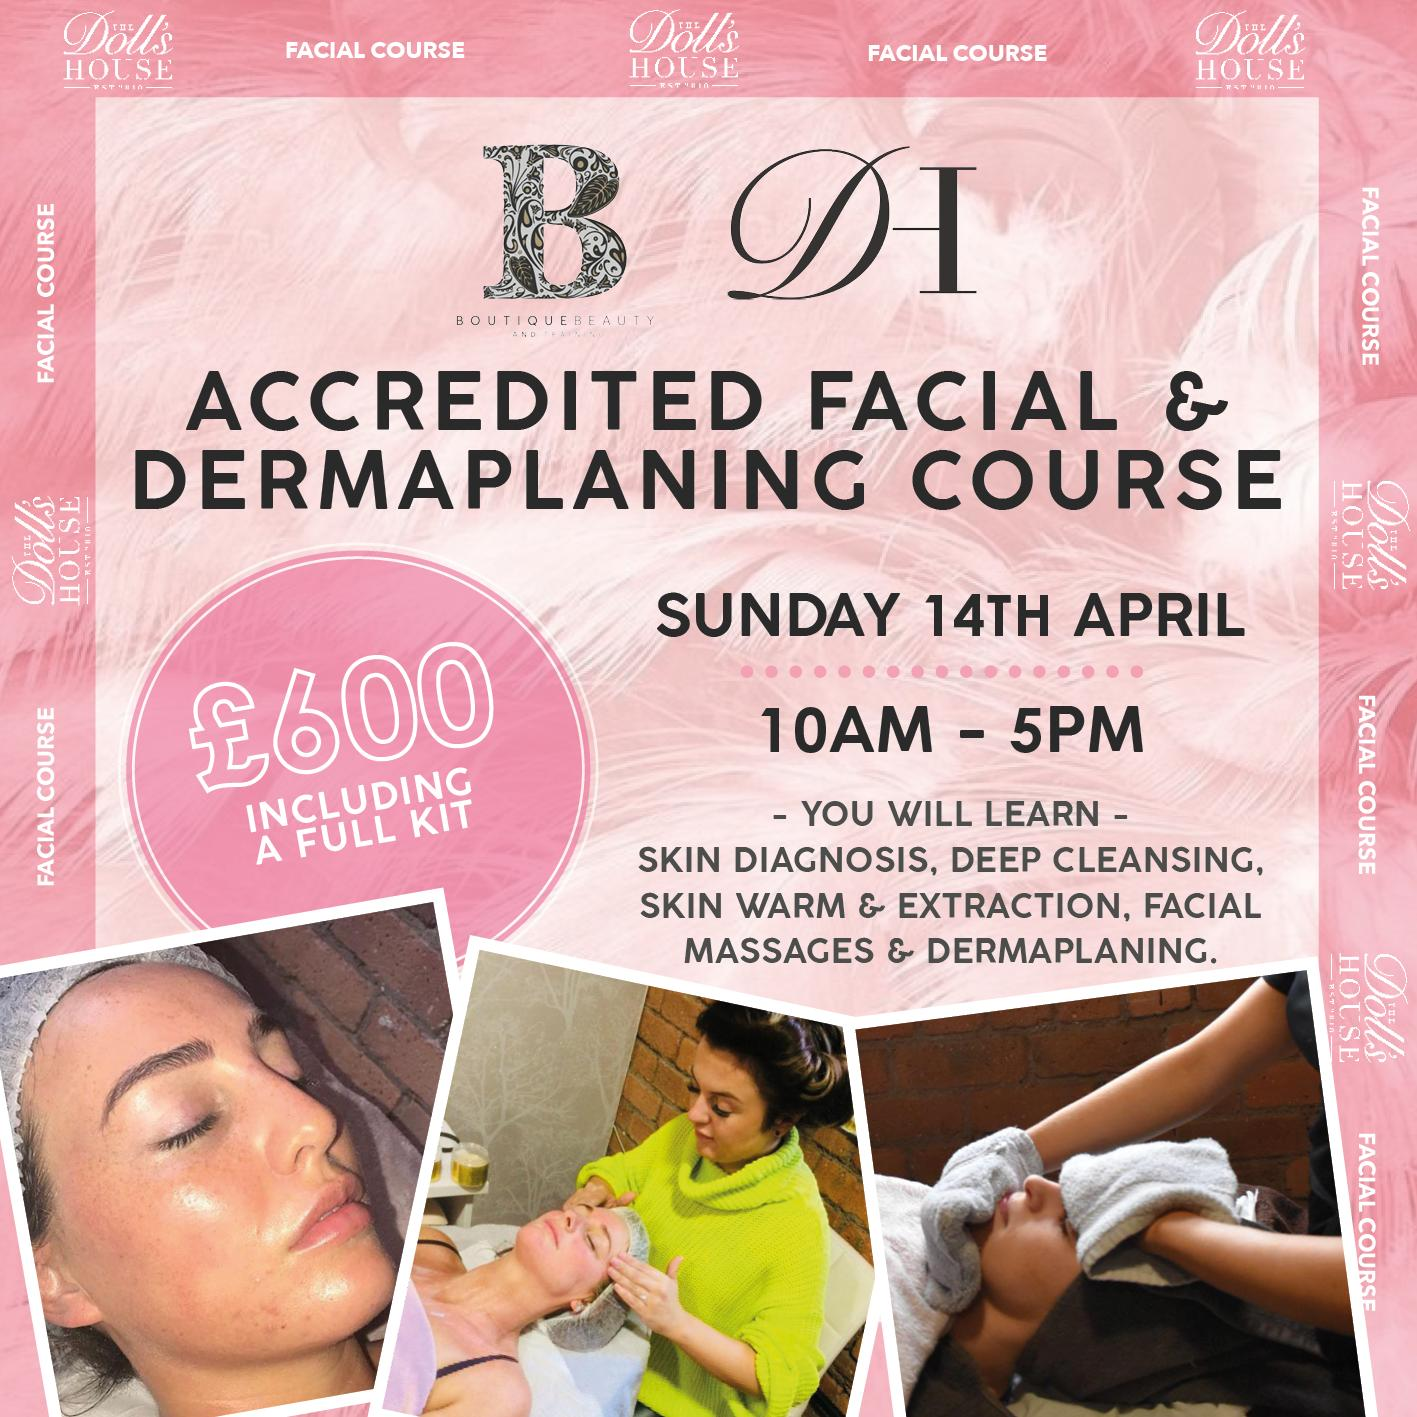 FULLY ACCREDITED DERMAPLANING COURSE